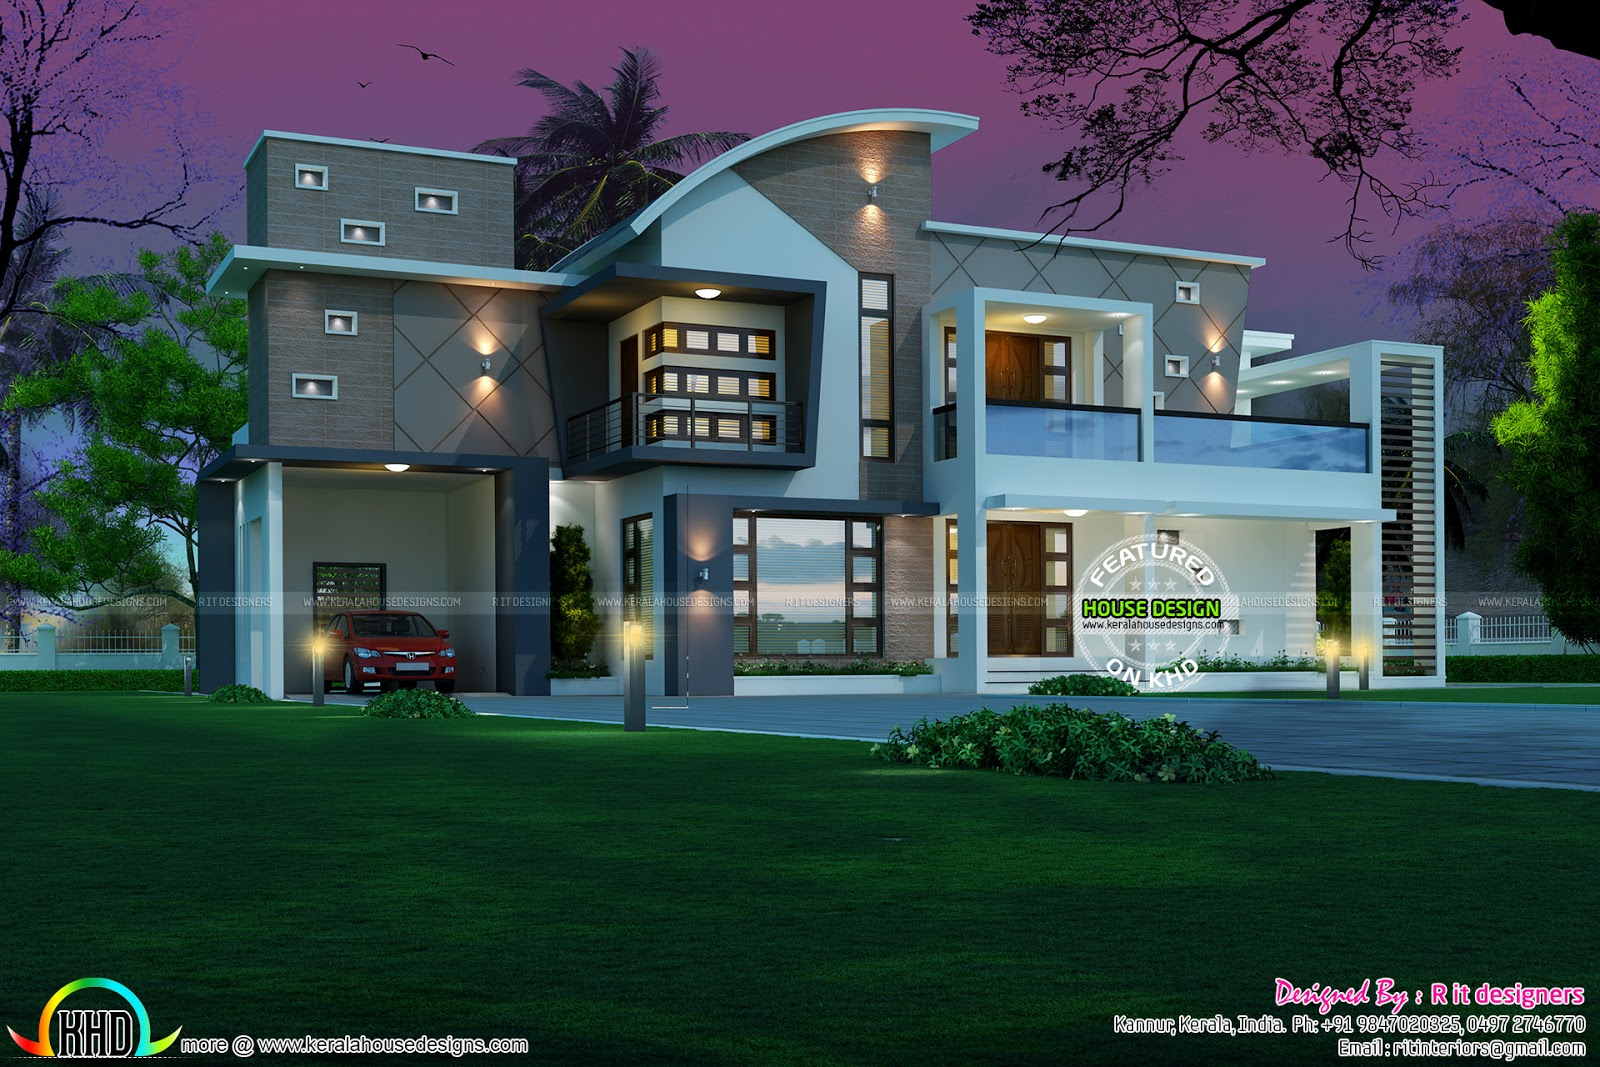 2847 sq ft house 60 lakhs cost estimated kerala home design and floor plans for Kerala home designs and estimated price